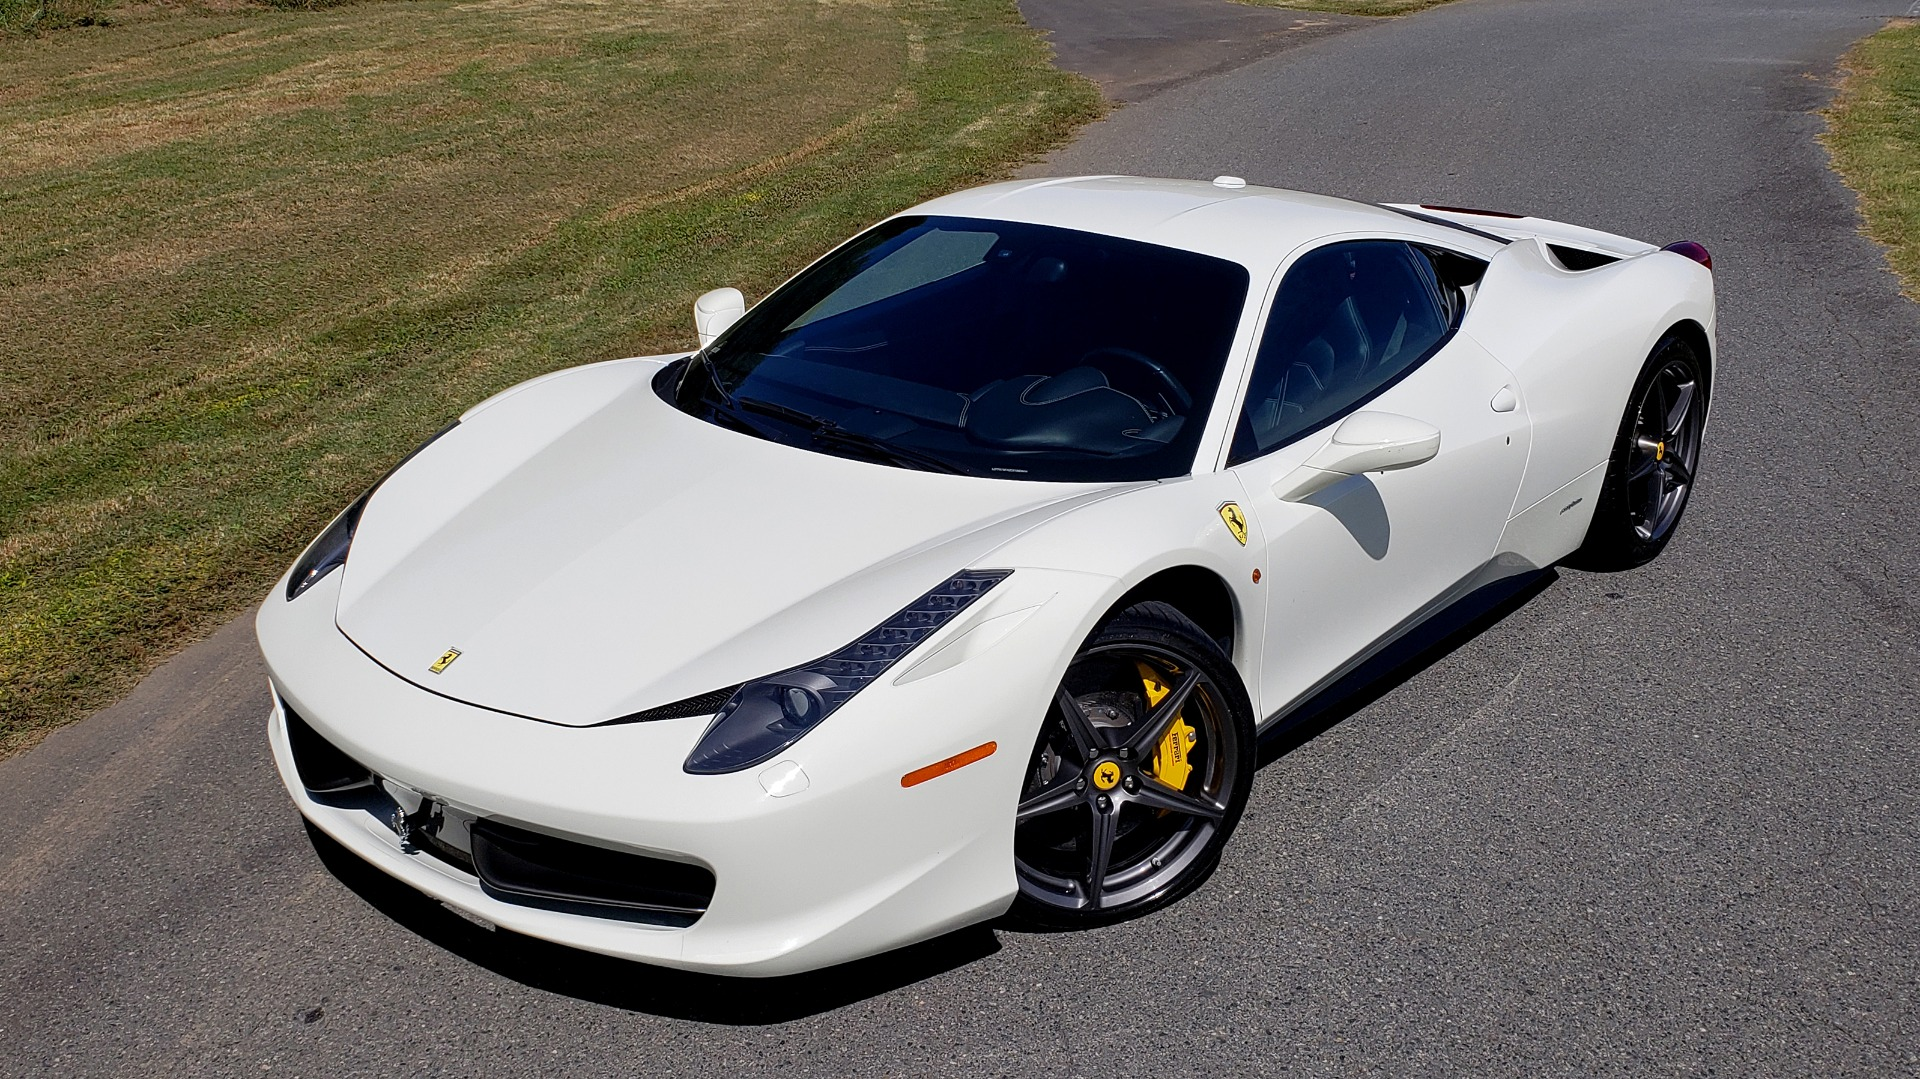 Used 2012 Ferrari 458 ITALIA COUPE / 4.5L V8 / 7-SPEED AUTO / LOW MILES SUPER CLEAN for sale $169,999 at Formula Imports in Charlotte NC 28227 6